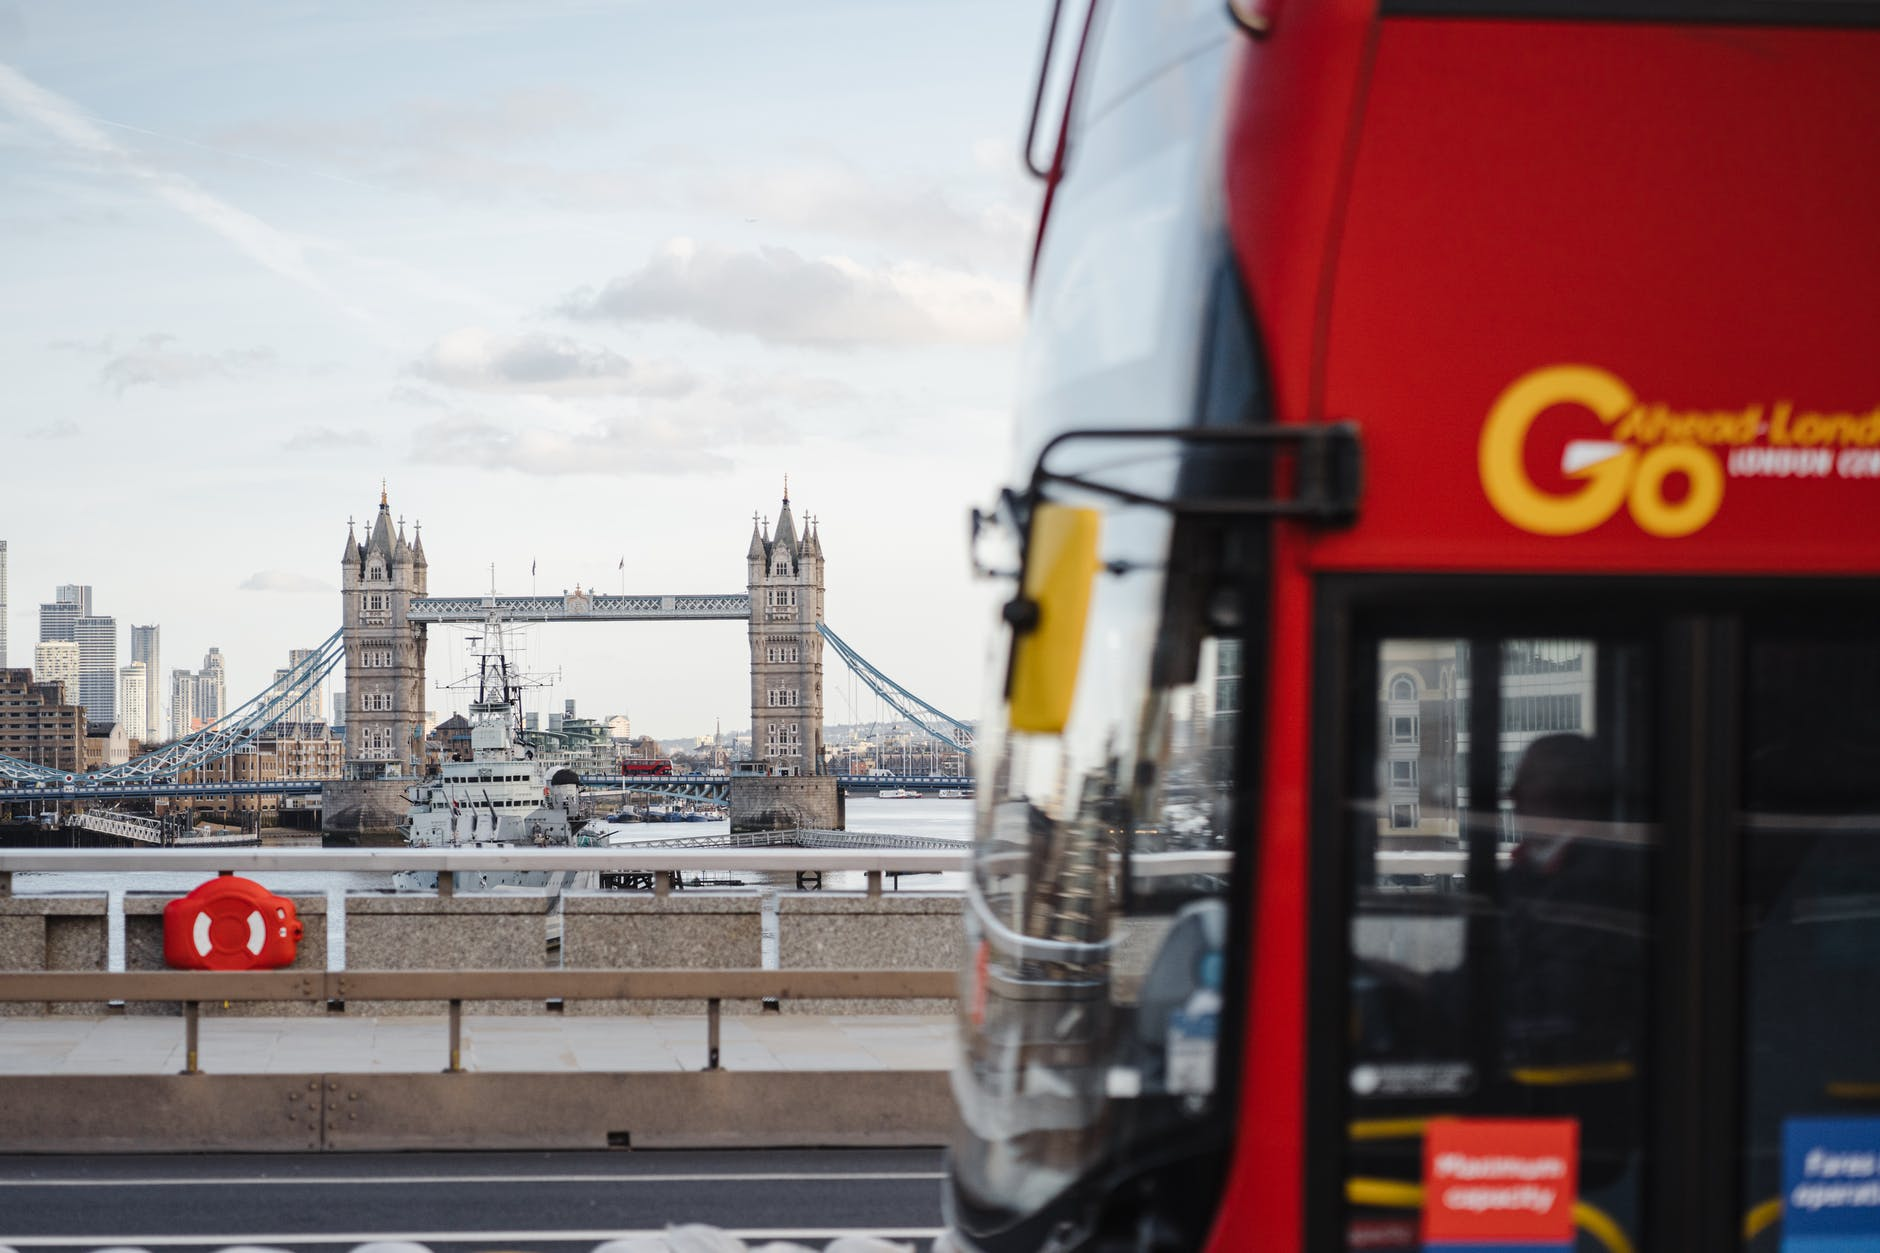 London Bus and Tower Bridge in background